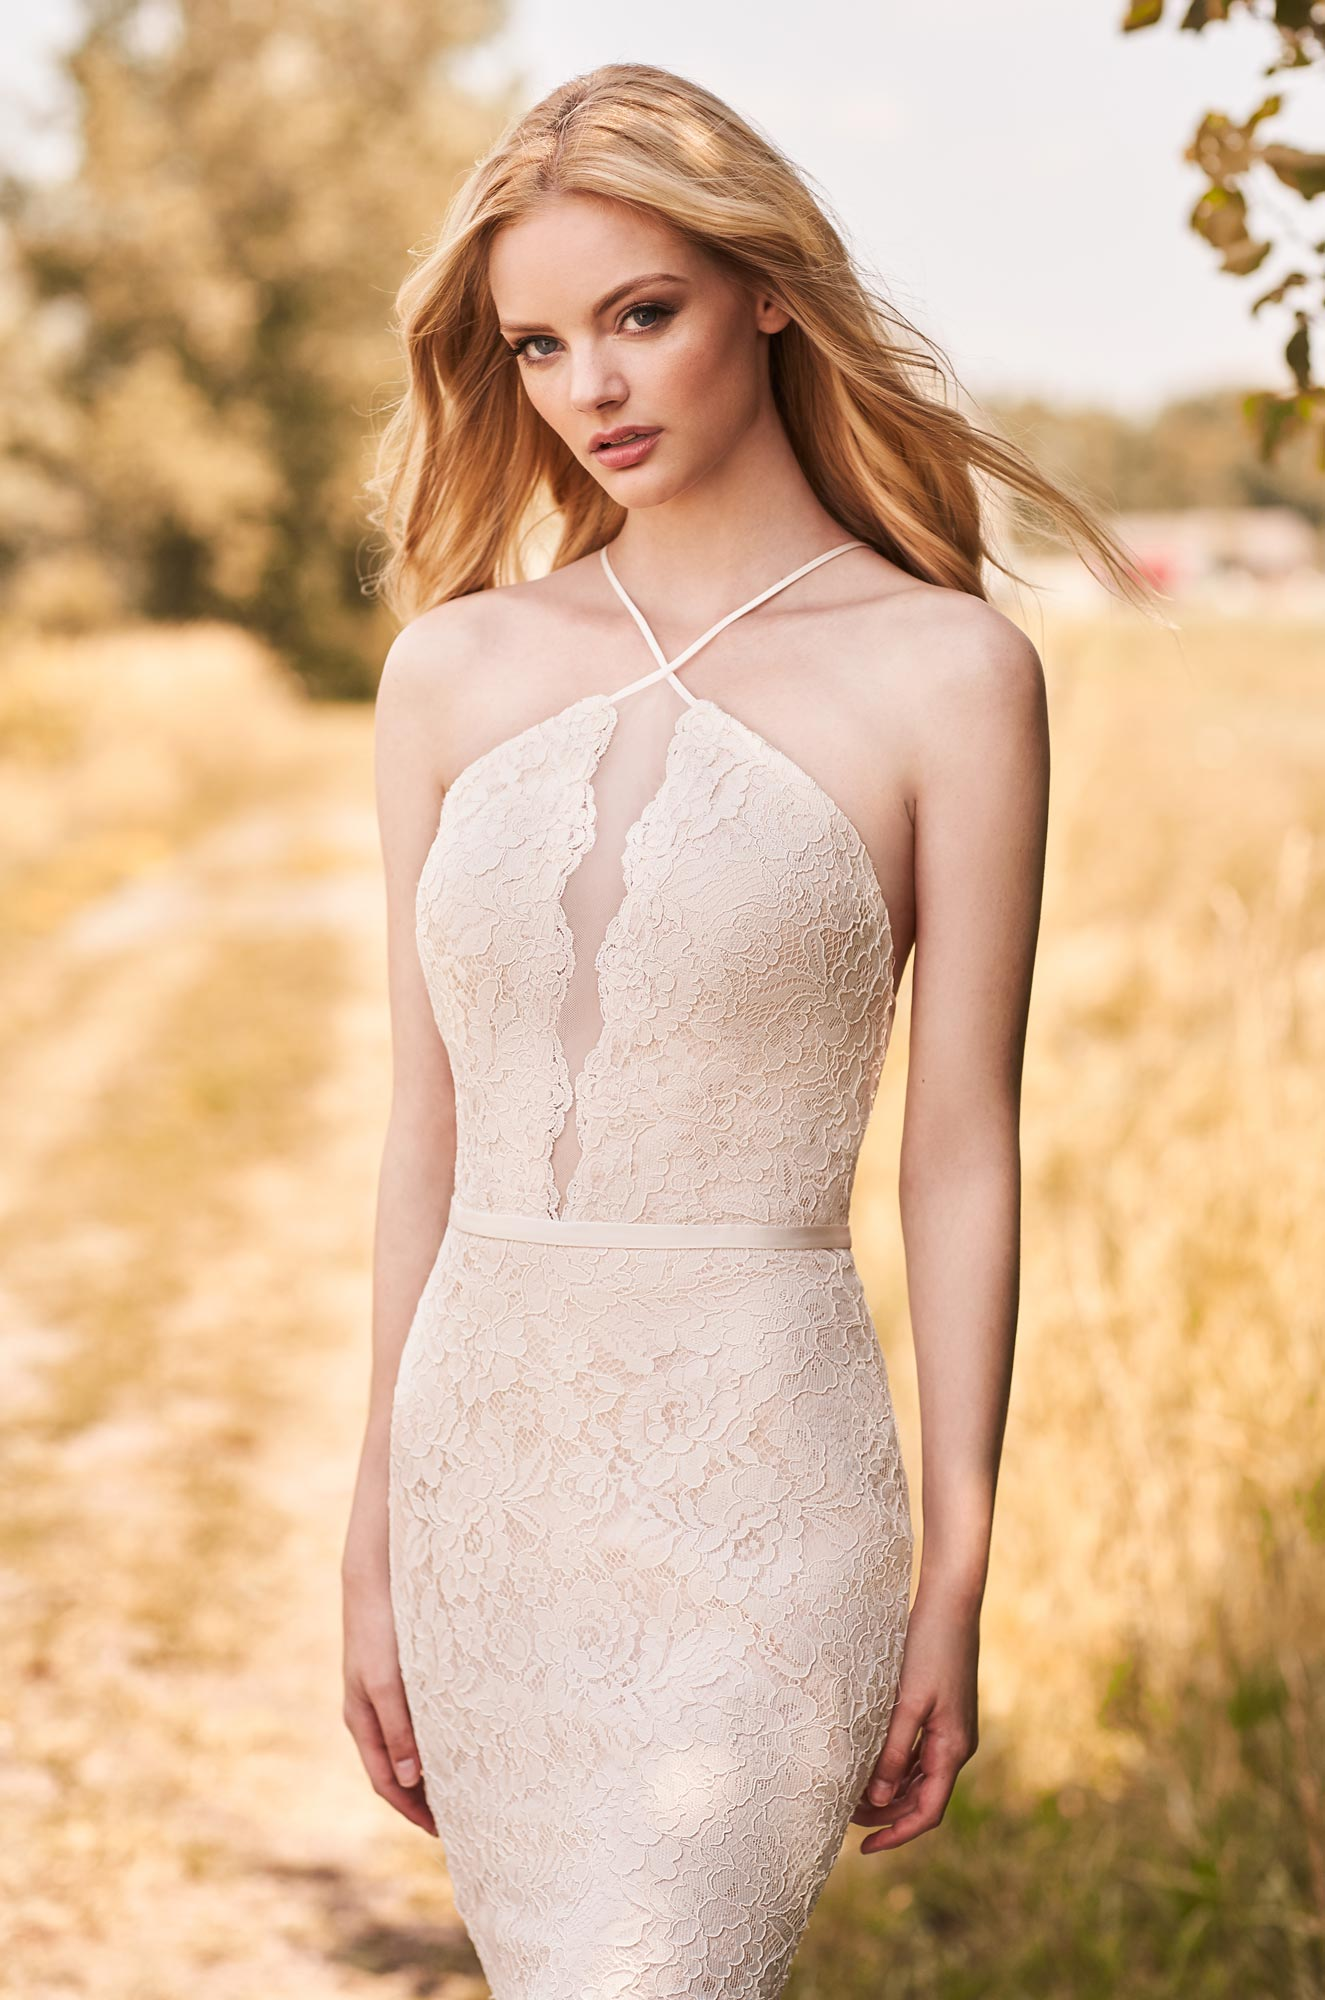 Alluring Halter Neckline Wedding Dress - Style #2286 | Mikaella Bridal